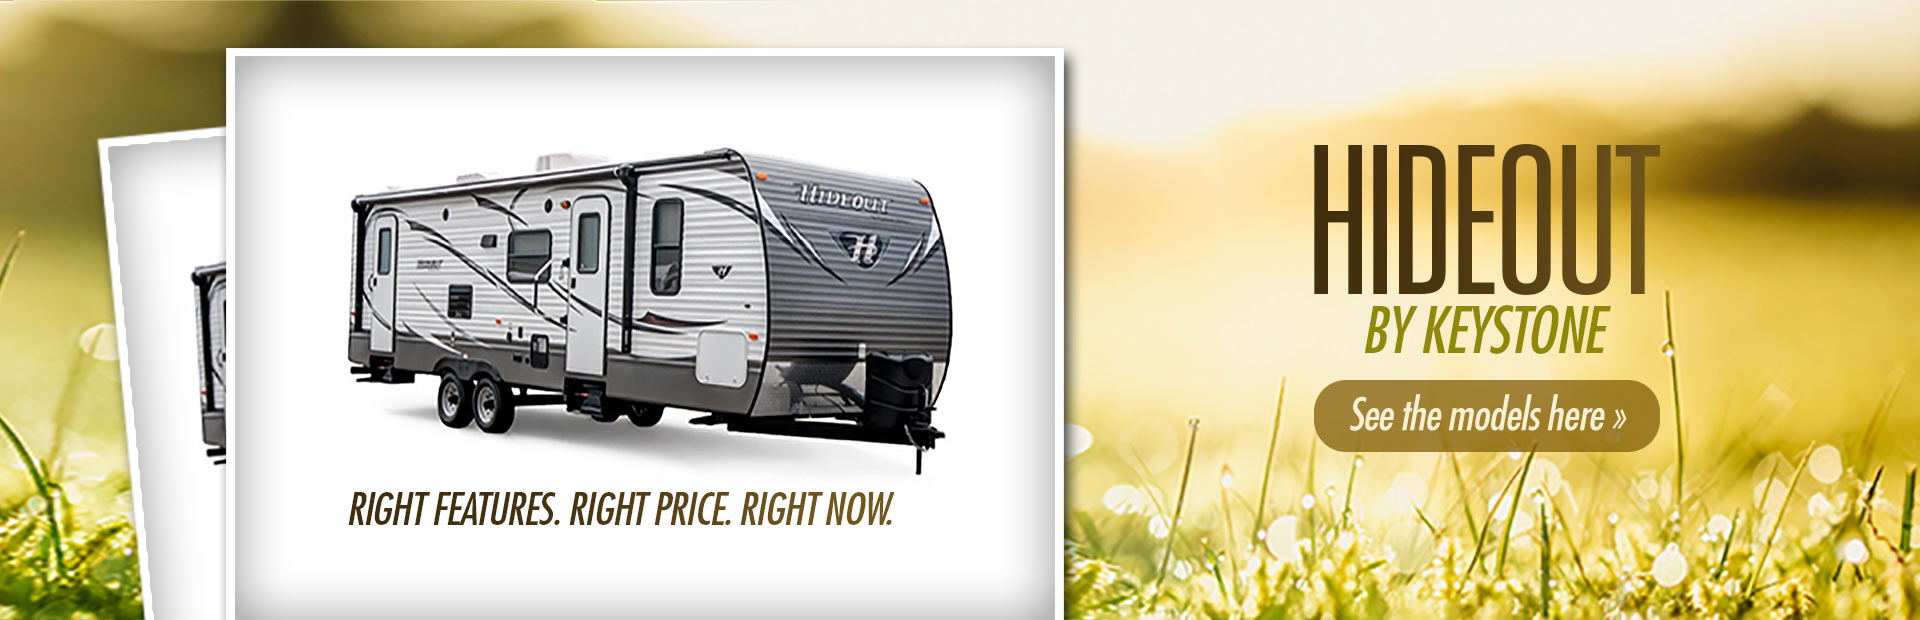 Hideout by Keystone: Click here to view the models.